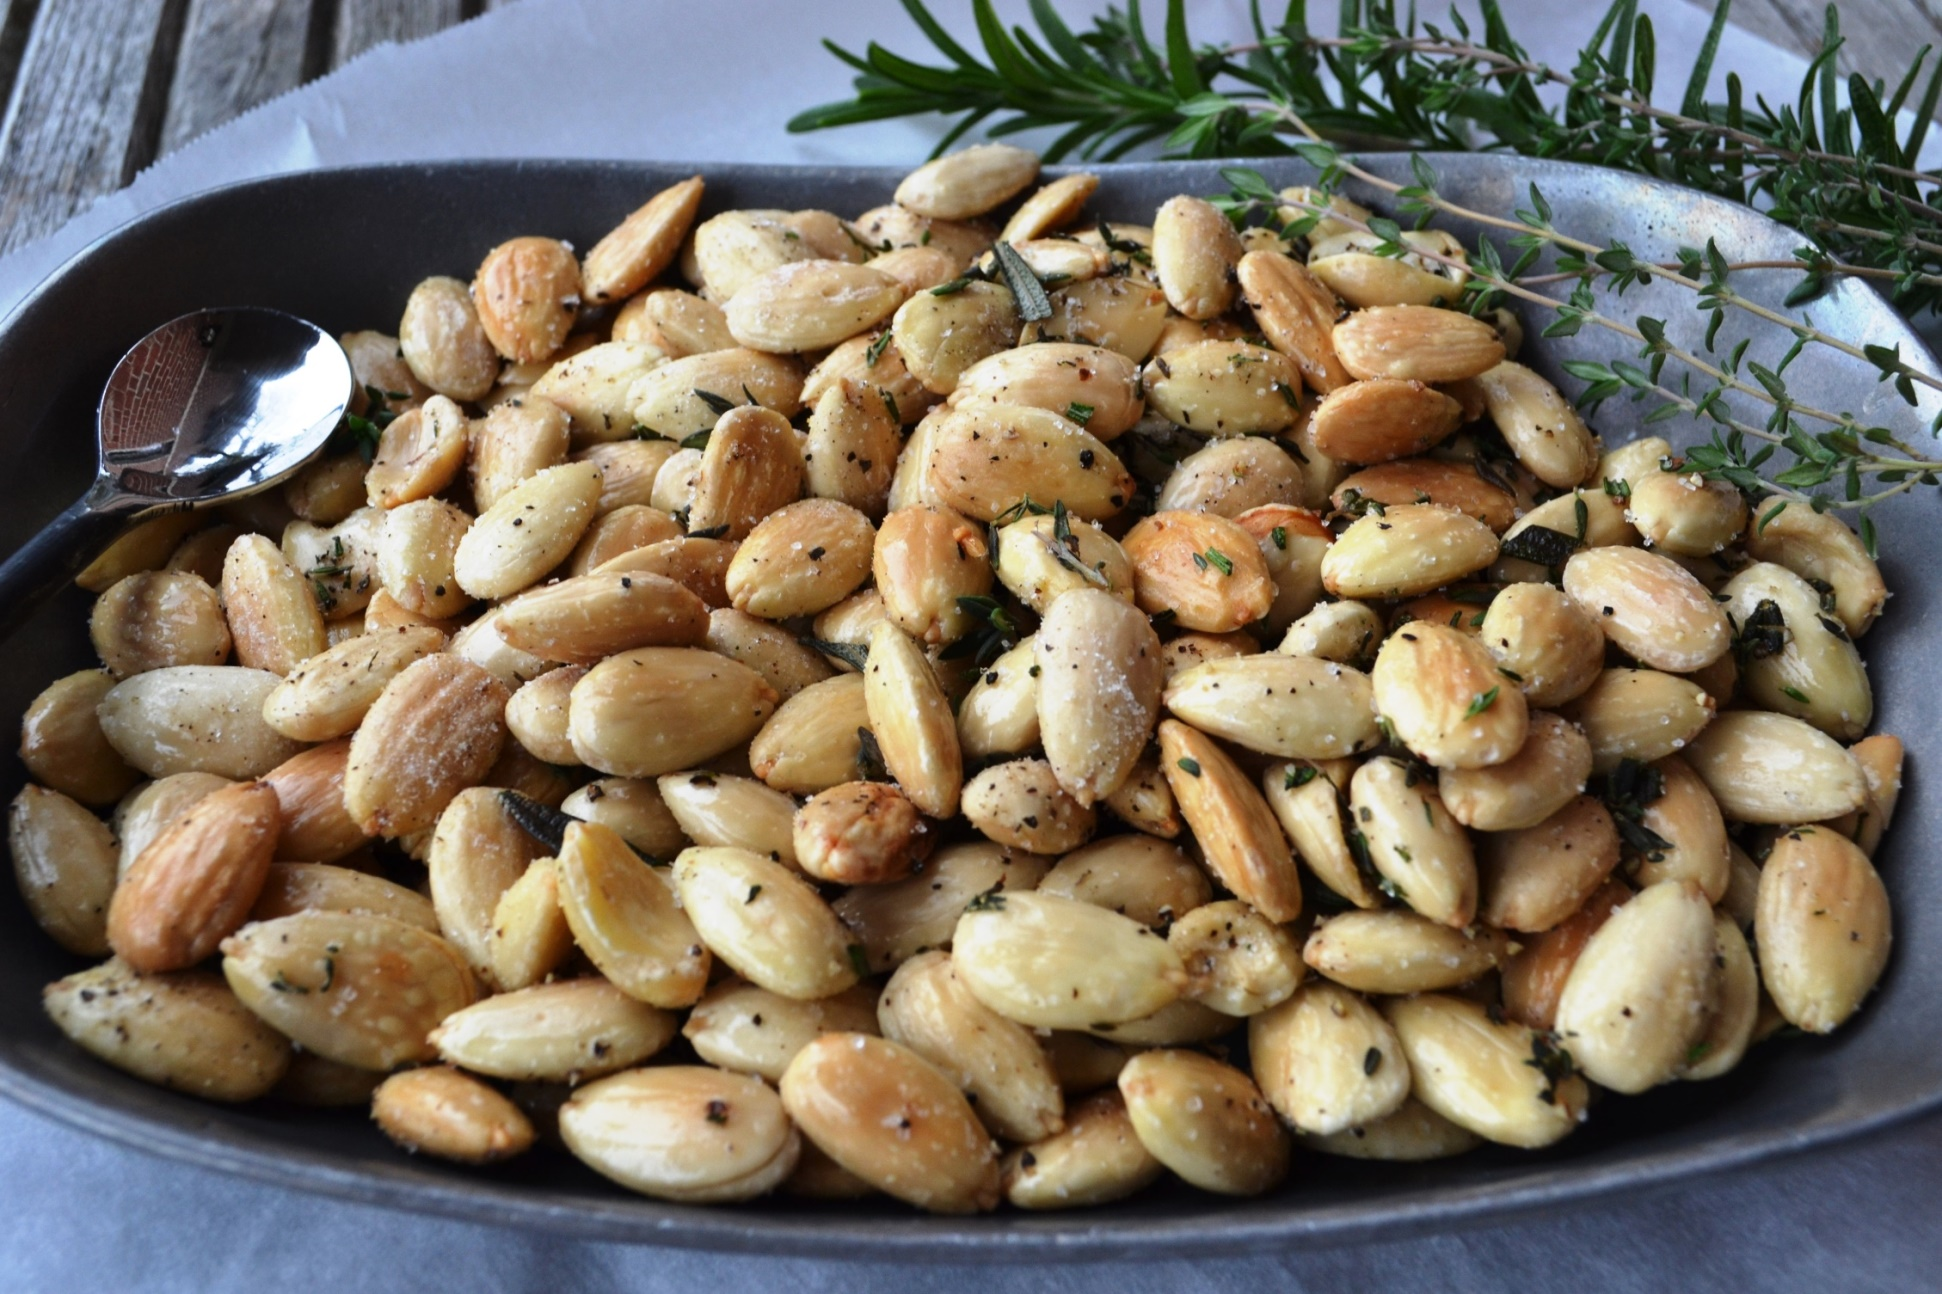 White Truffle Oil Fried Almonds with Herbs